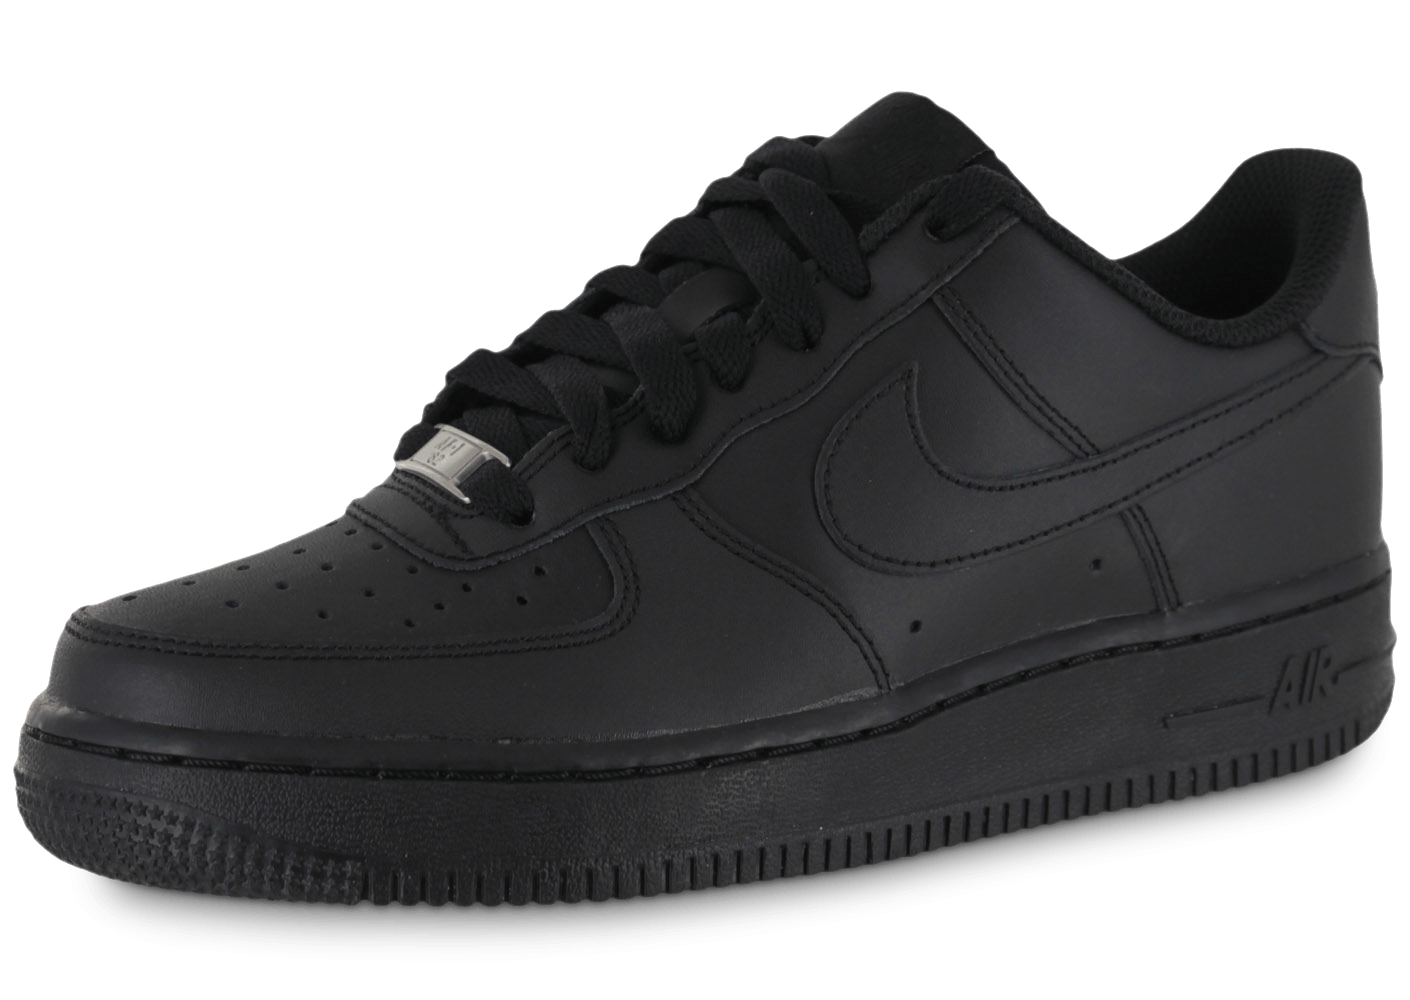 b10be70af954 chaussure nike air force 1